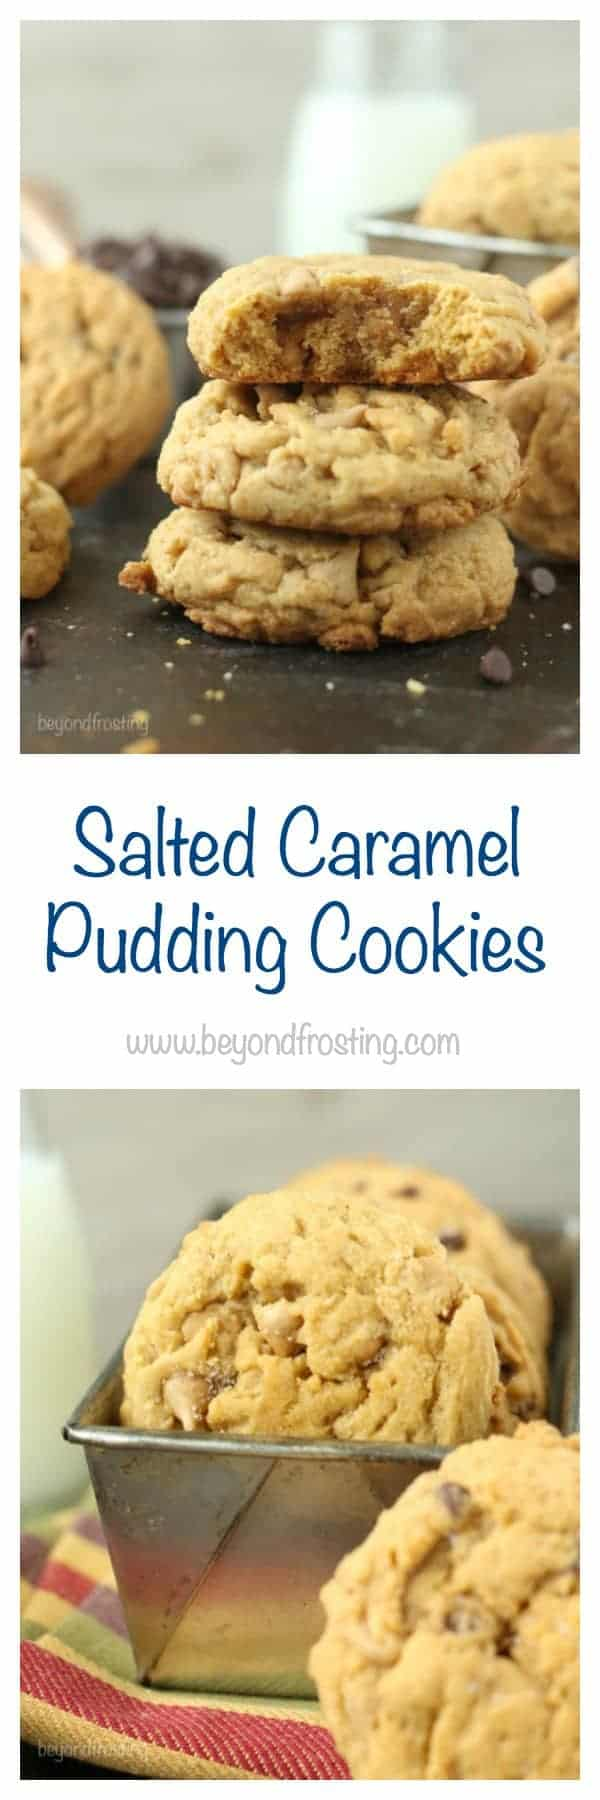 Salted Caramel Pudding Cookies are soft-baked cookies loaded with salted caramel chips and sprinkled with a touch of salt.